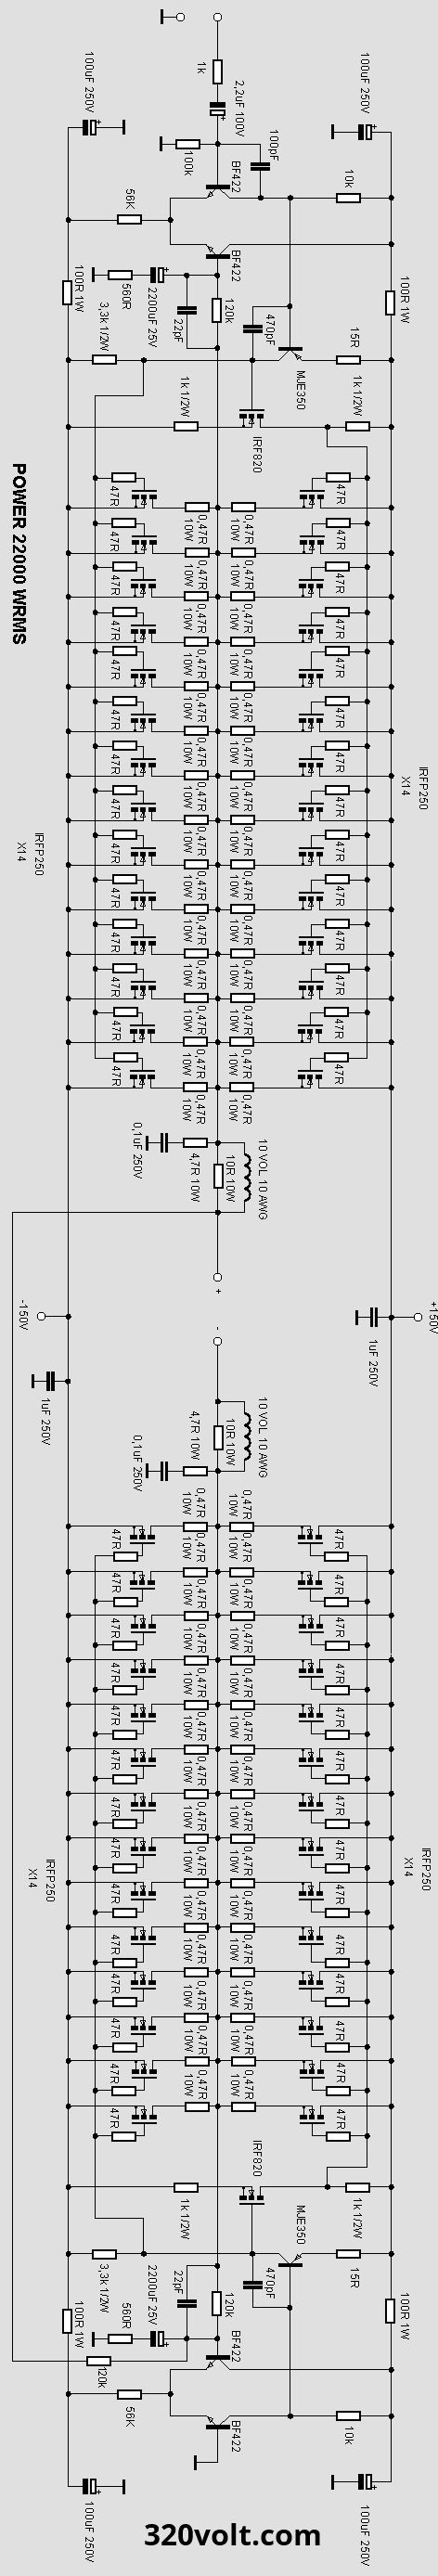 hight resolution of  wrg 0912 1000 watts amplifier circuit diagrams